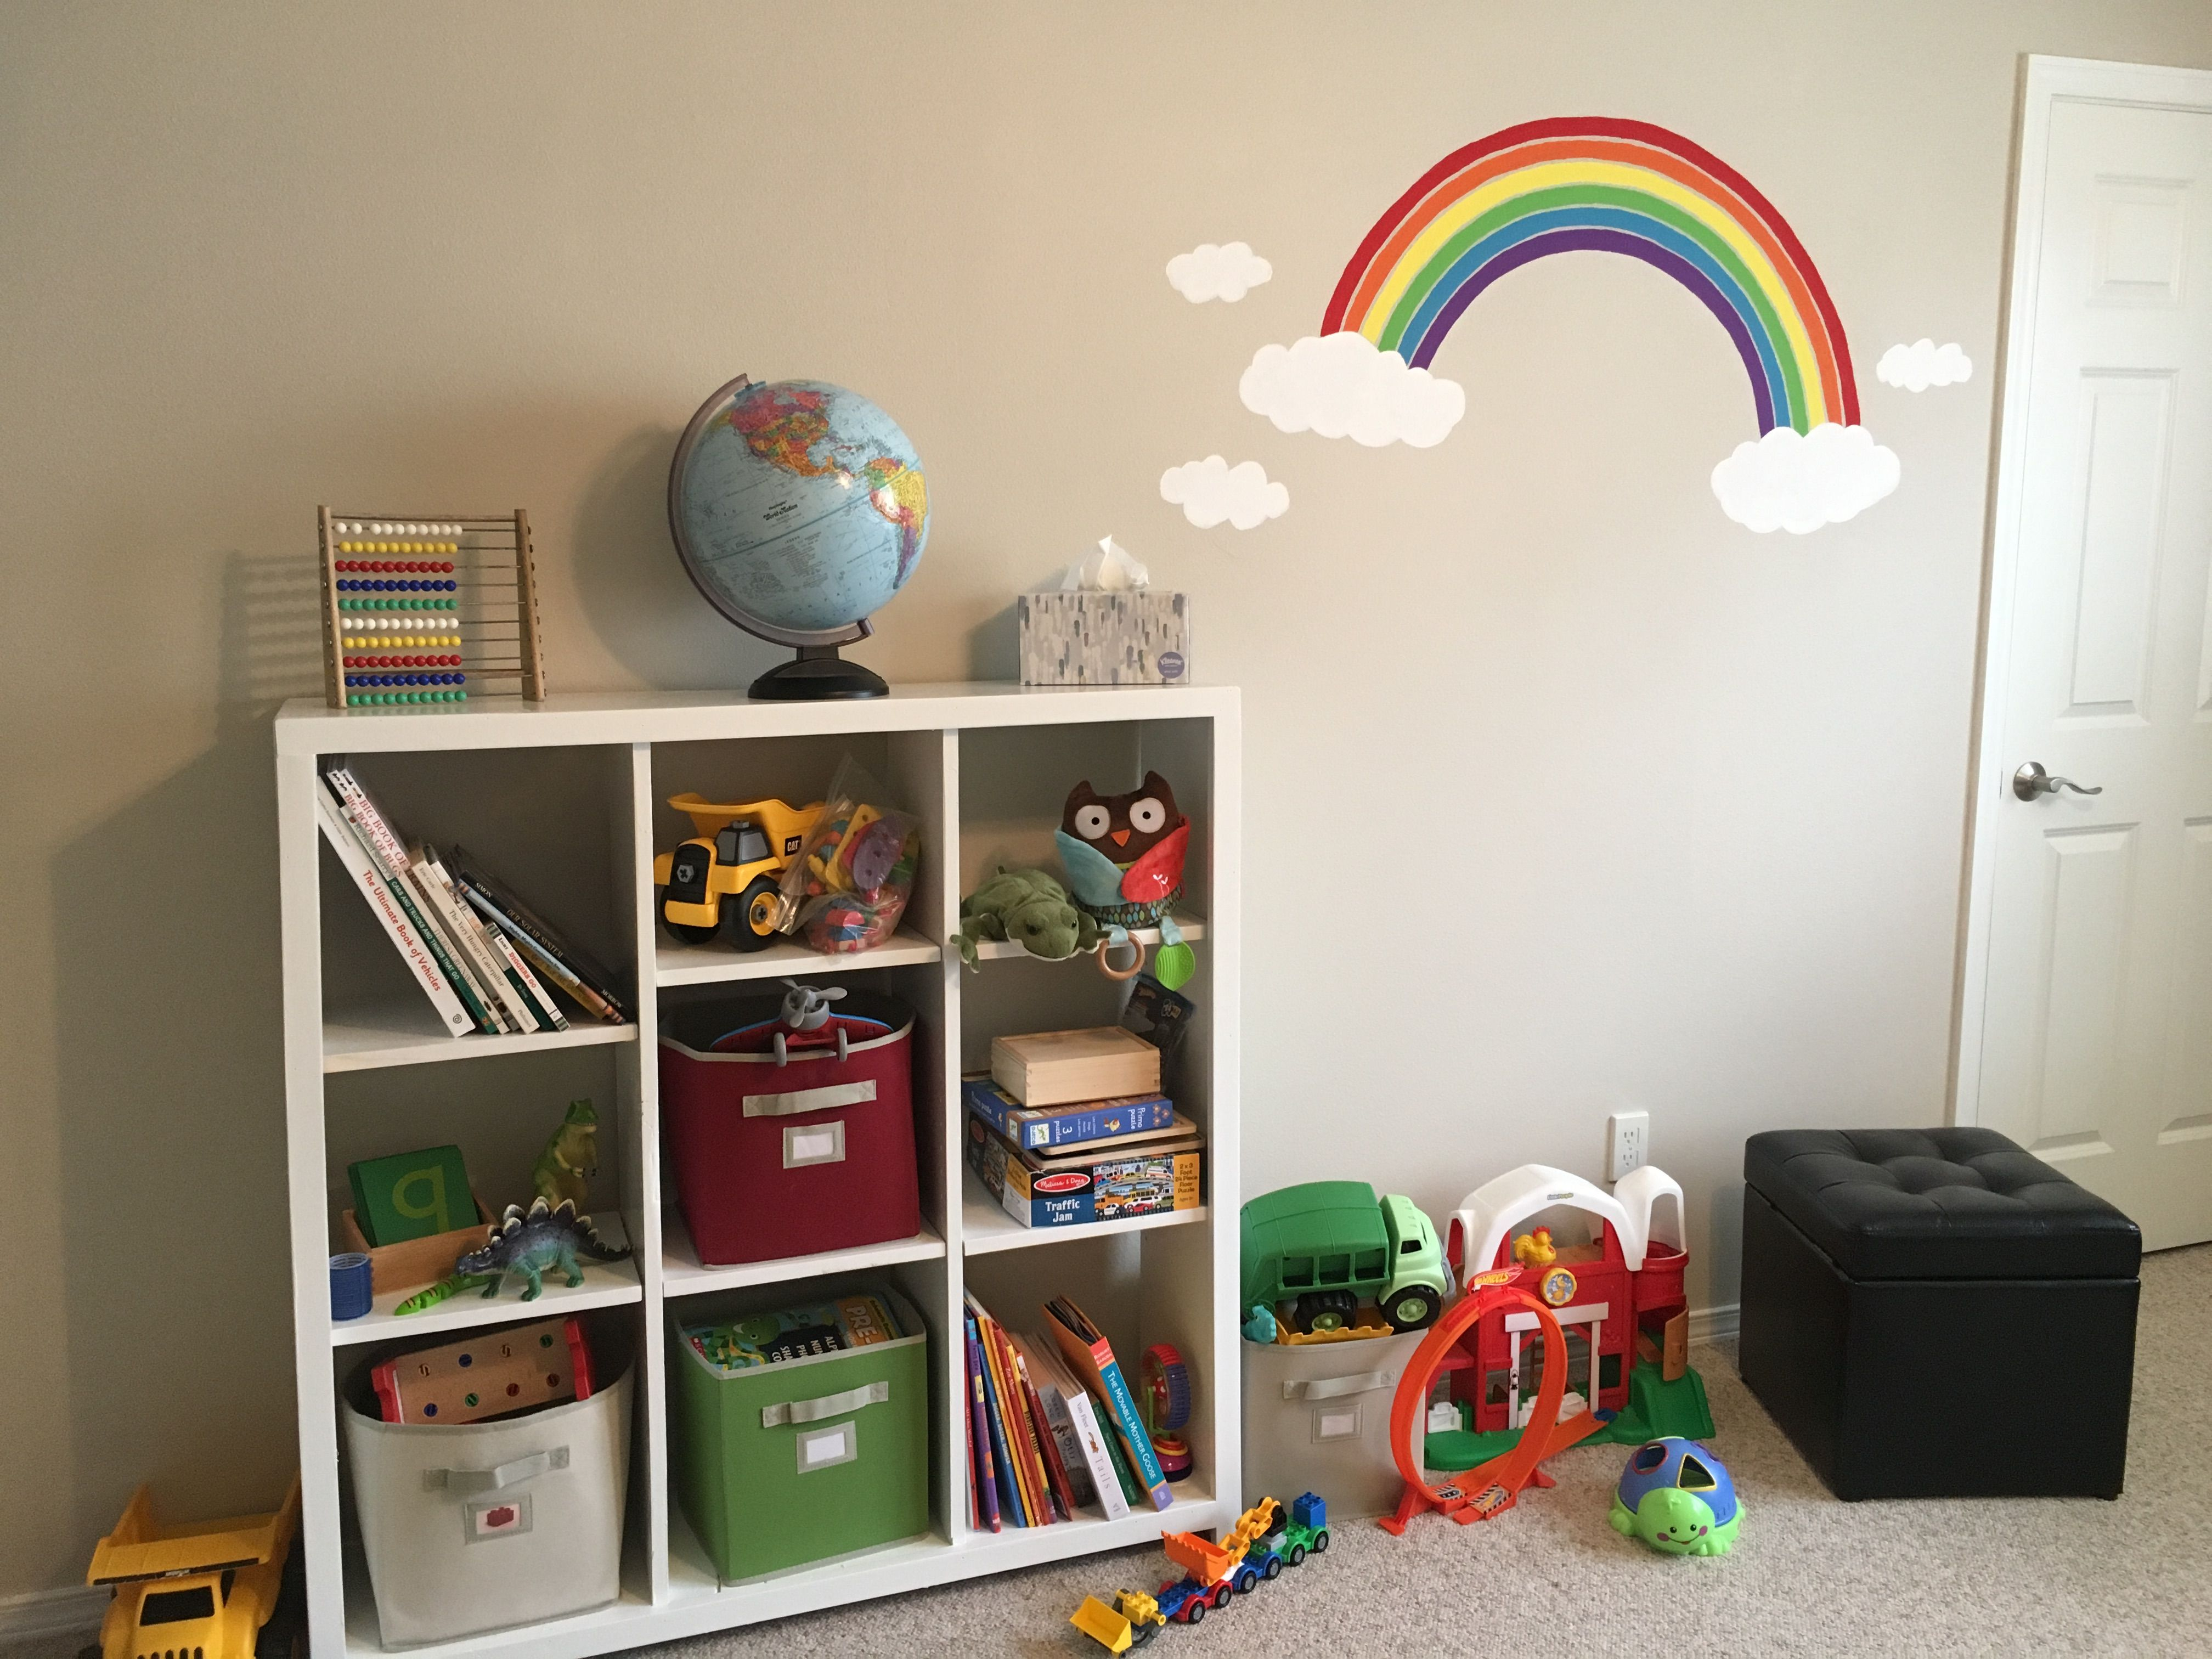 Playroom with diy cubbies and hand painted rainbow with